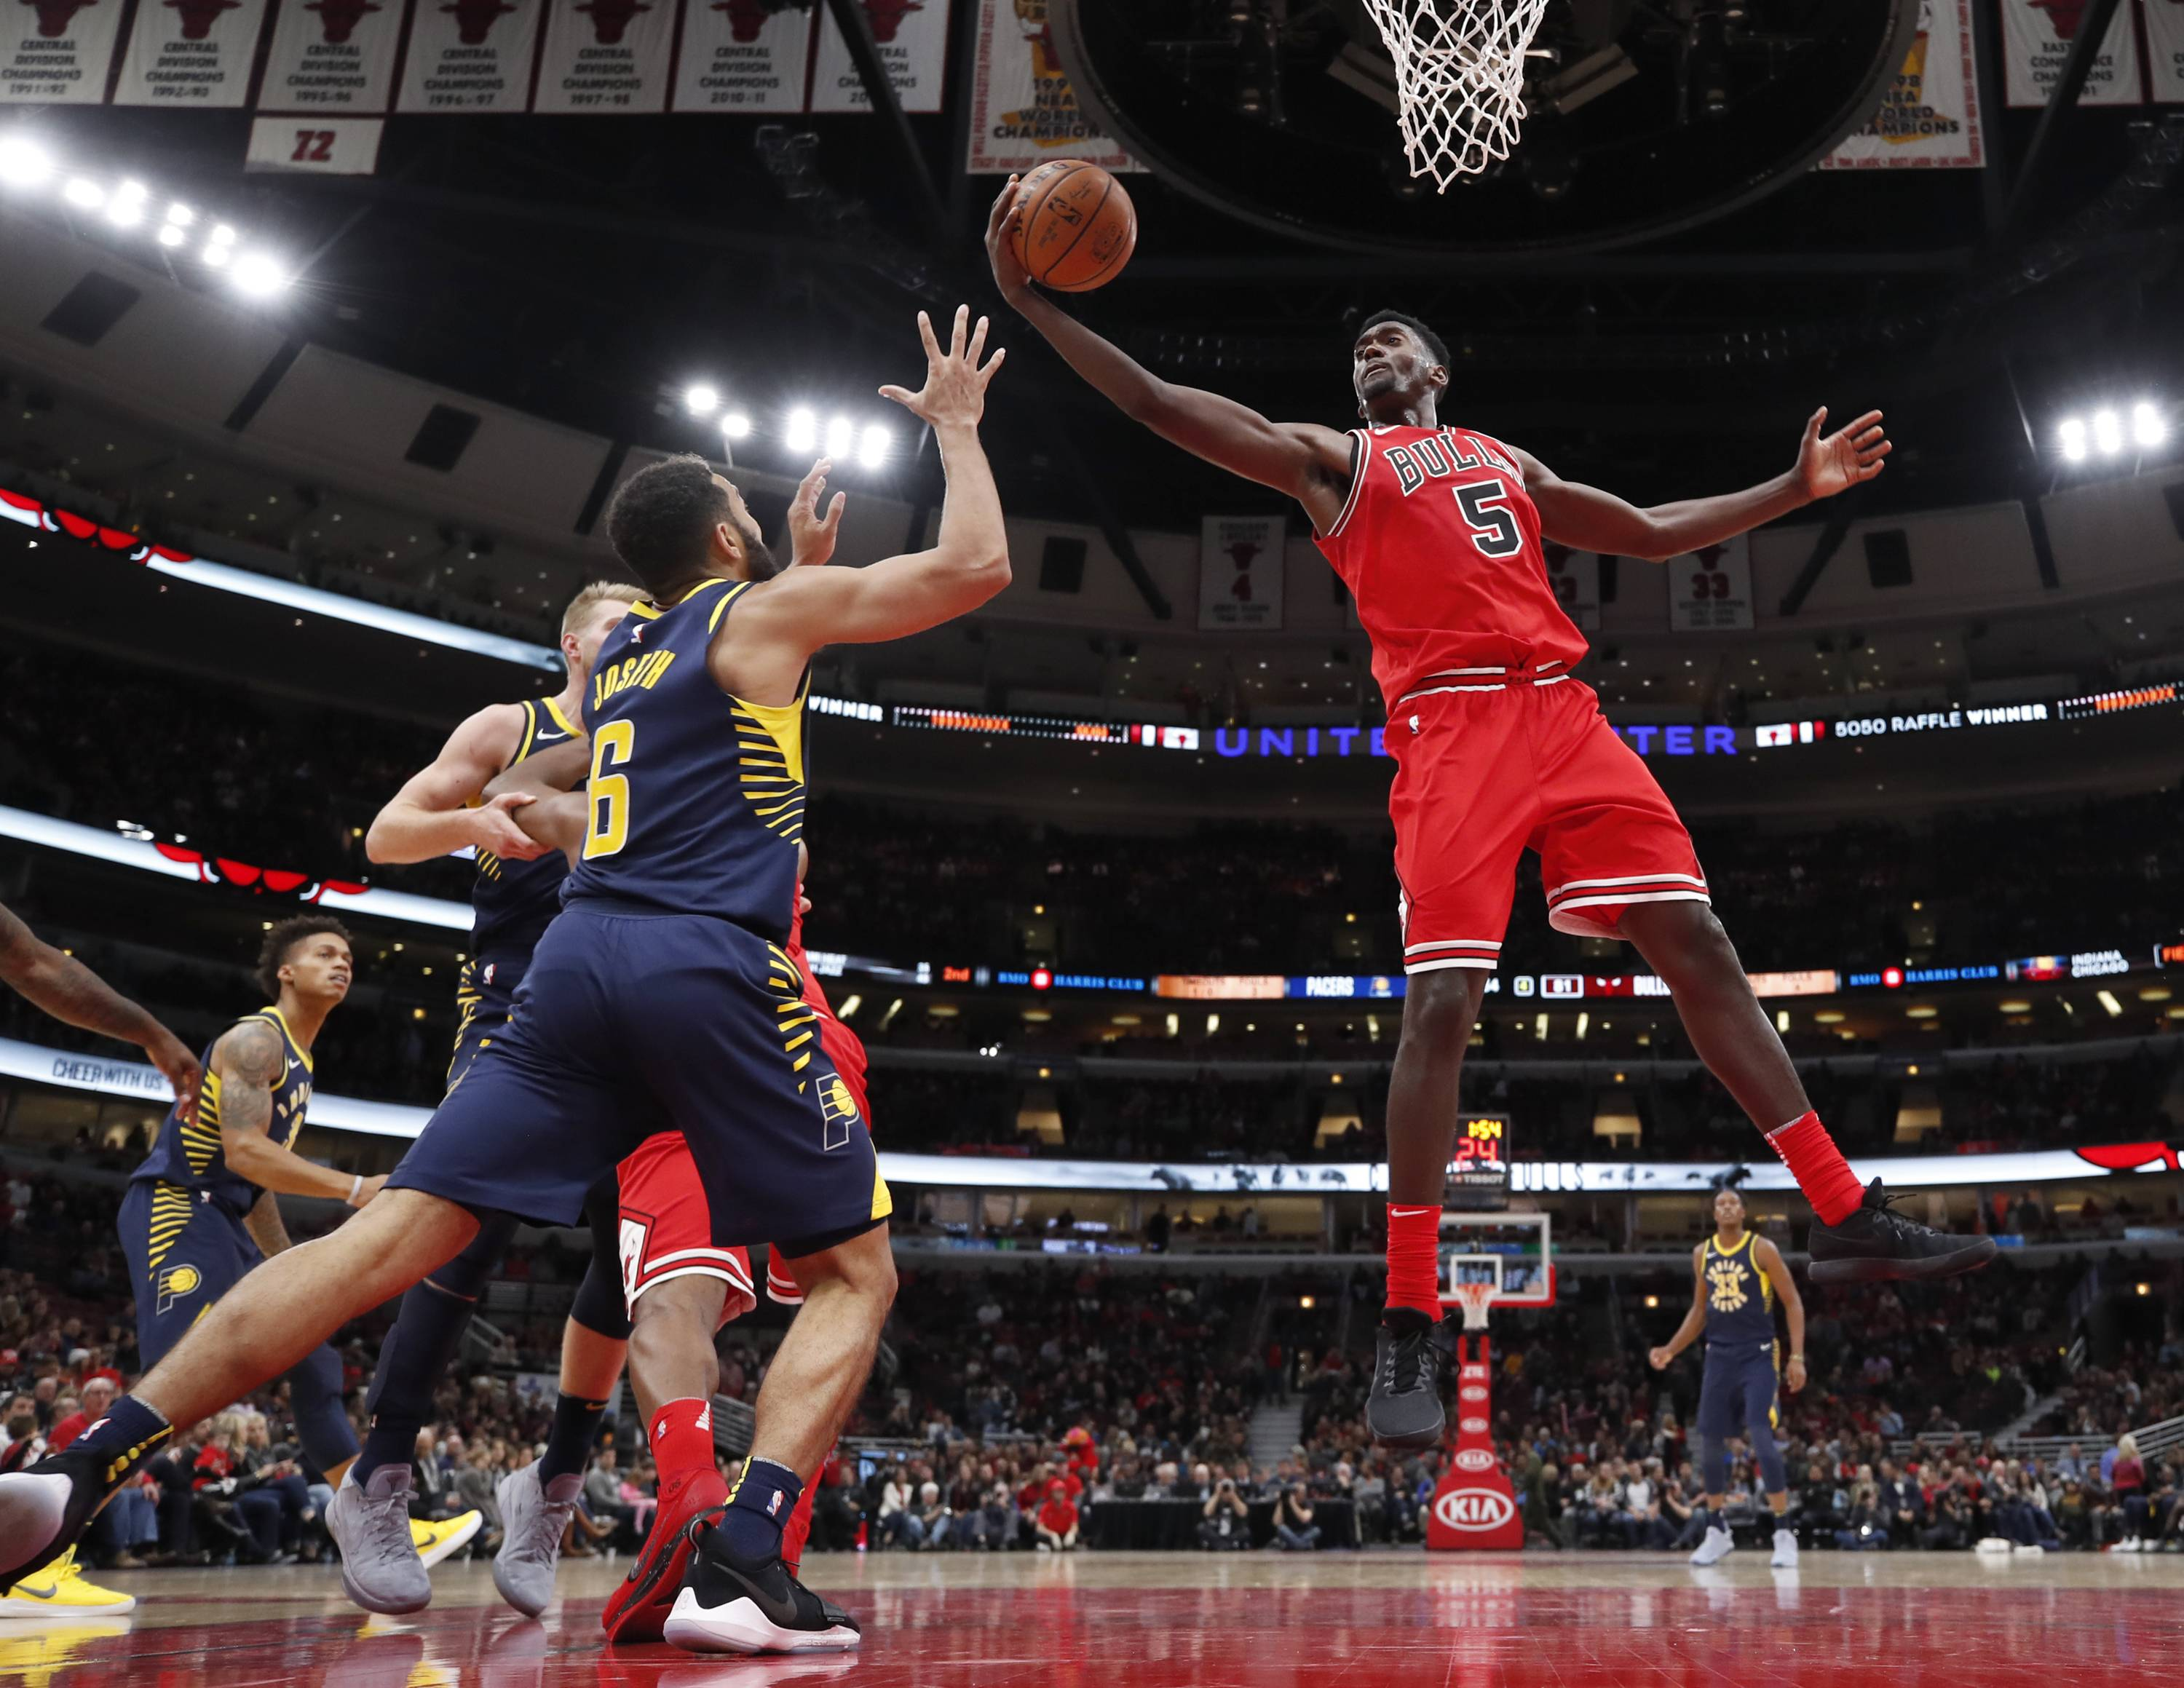 Bobby Portis delivered his second-straight 20-10 game since returning from an eight-game suspension. He finished with 20 points and 11 rebounds on Friday in just 25 minutes of action. But the Pacers were simply too much for the Bulls and won 105-87.